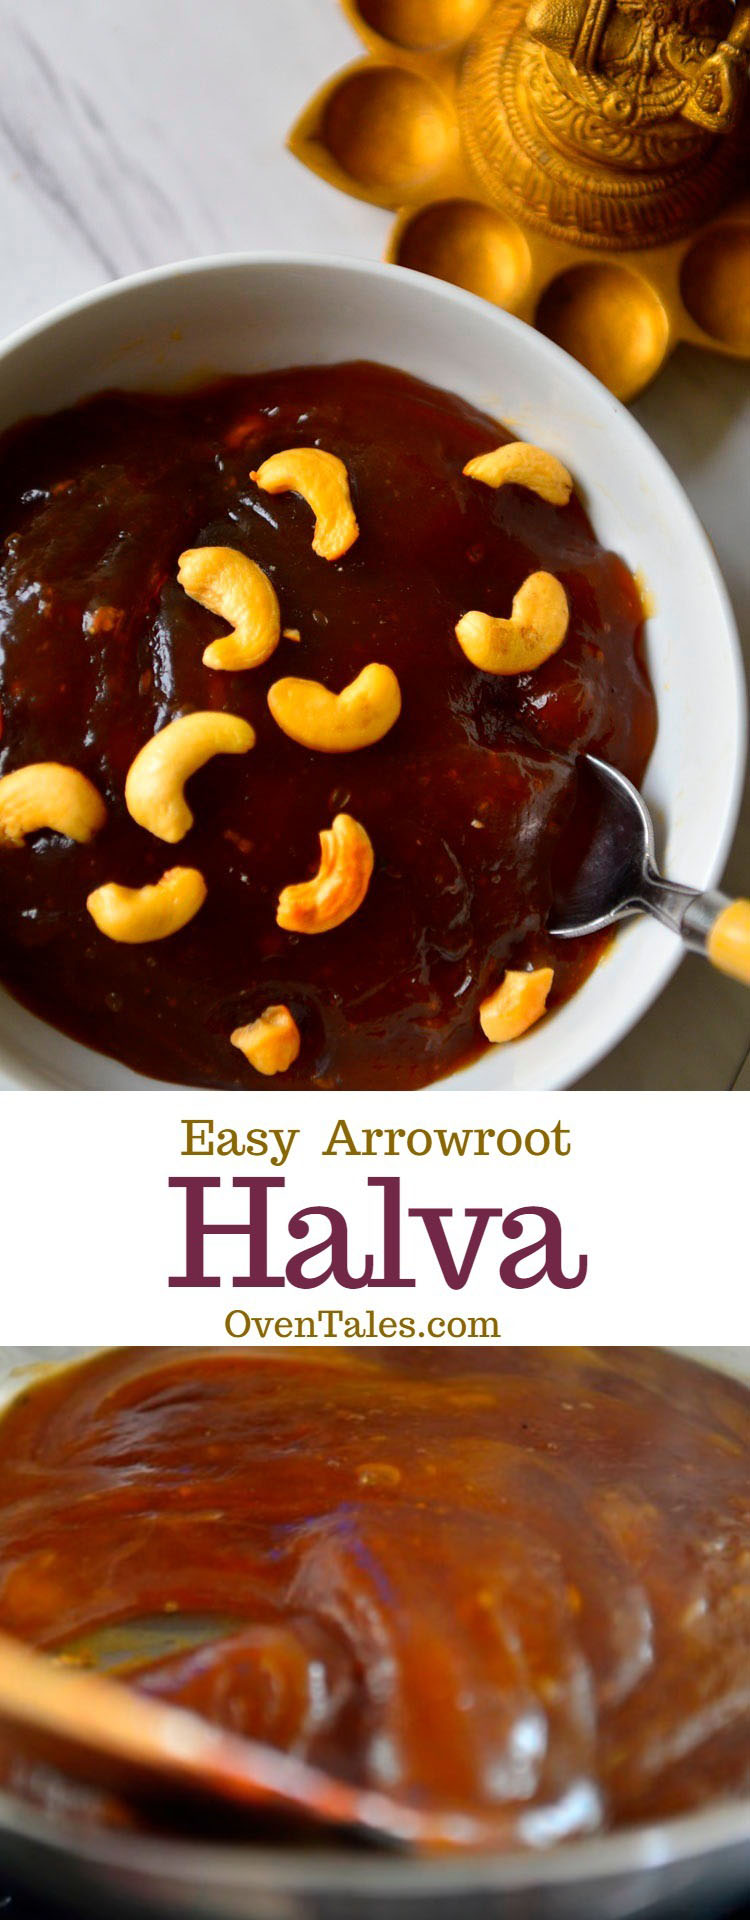 Easy Arrowroot Halva